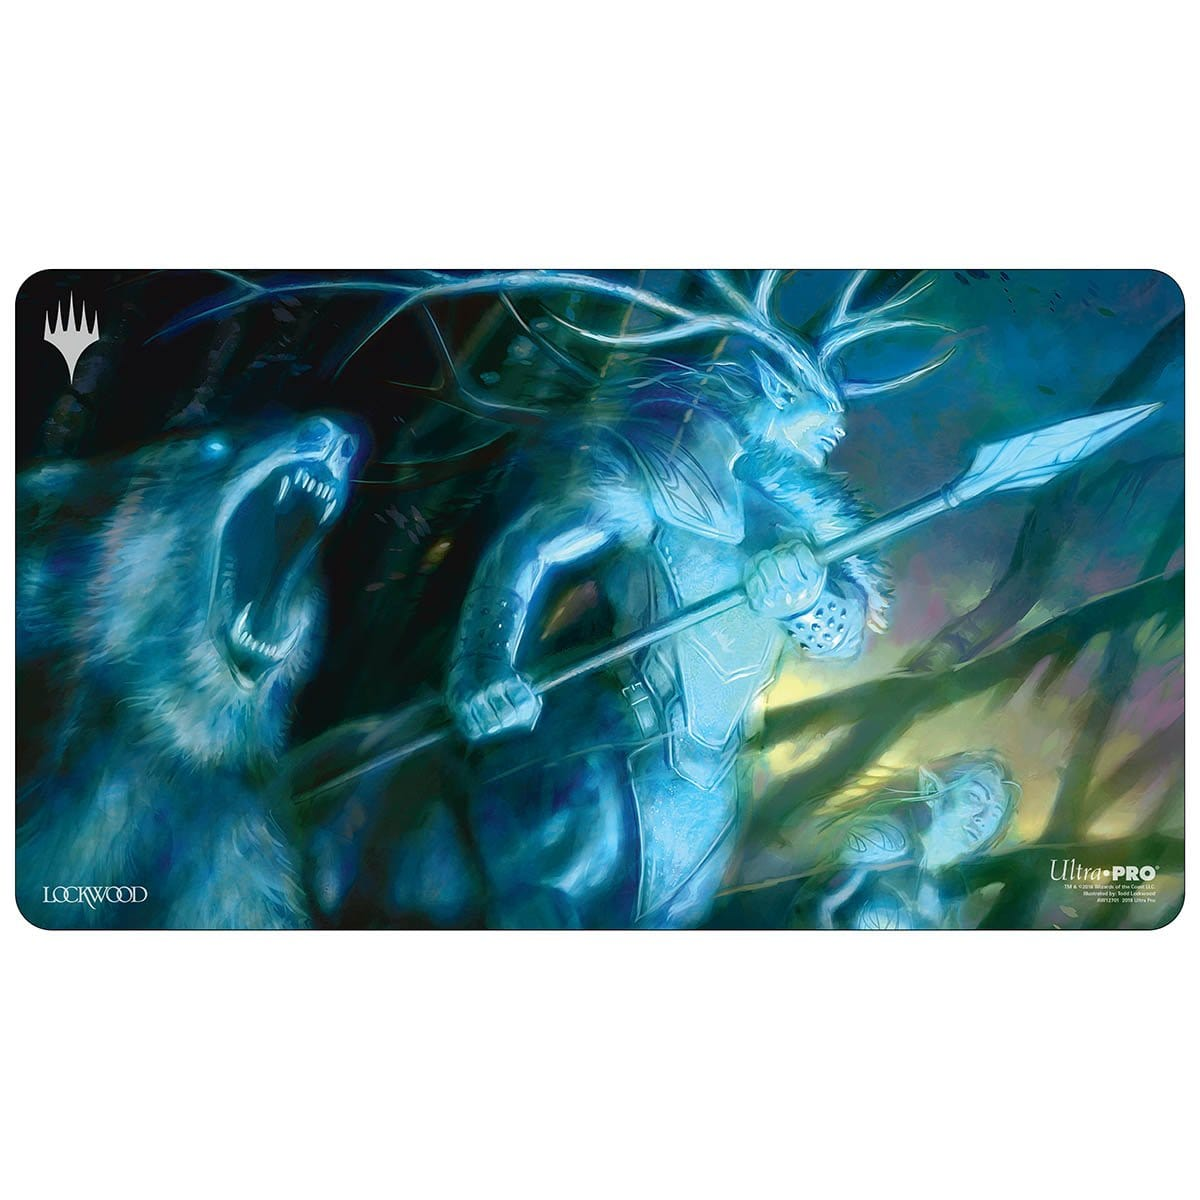 Karador, Ghost Chieftan Playmat - Playmat - Original Magic Art - Accessories for Magic the Gathering and other card games